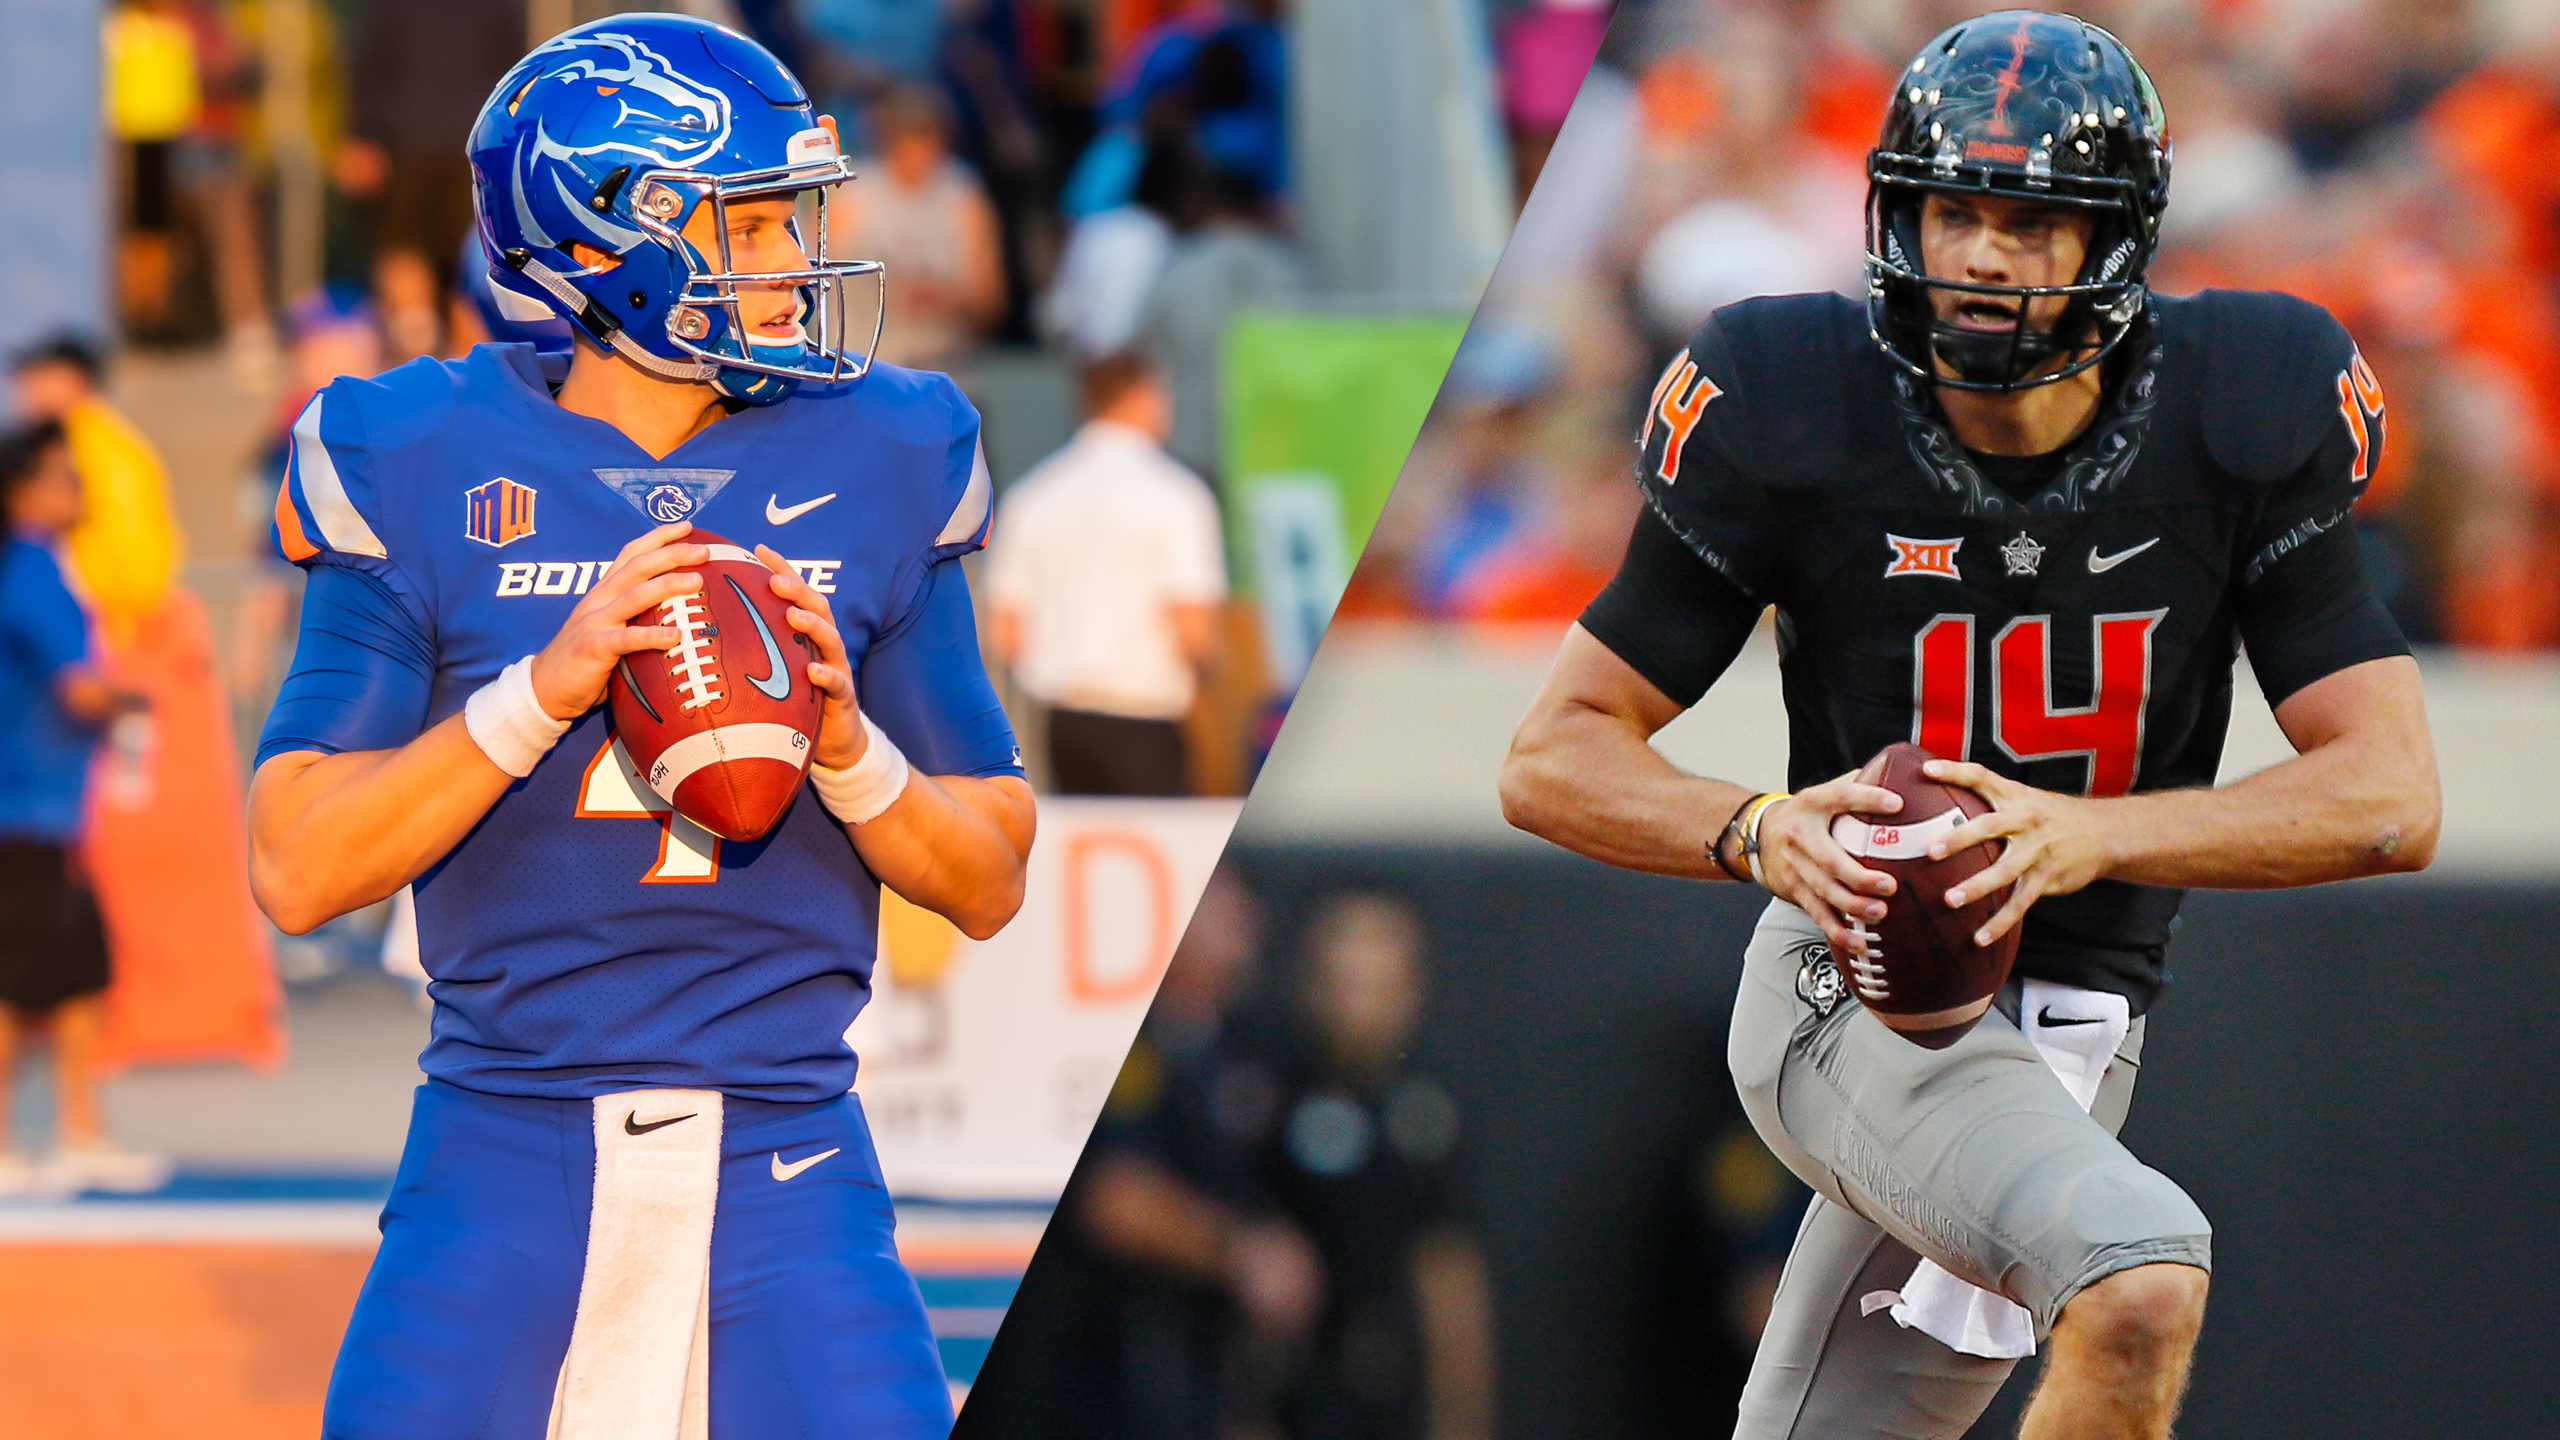 #17 Boise State vs. #24 Oklahoma State (Football) (re-air)